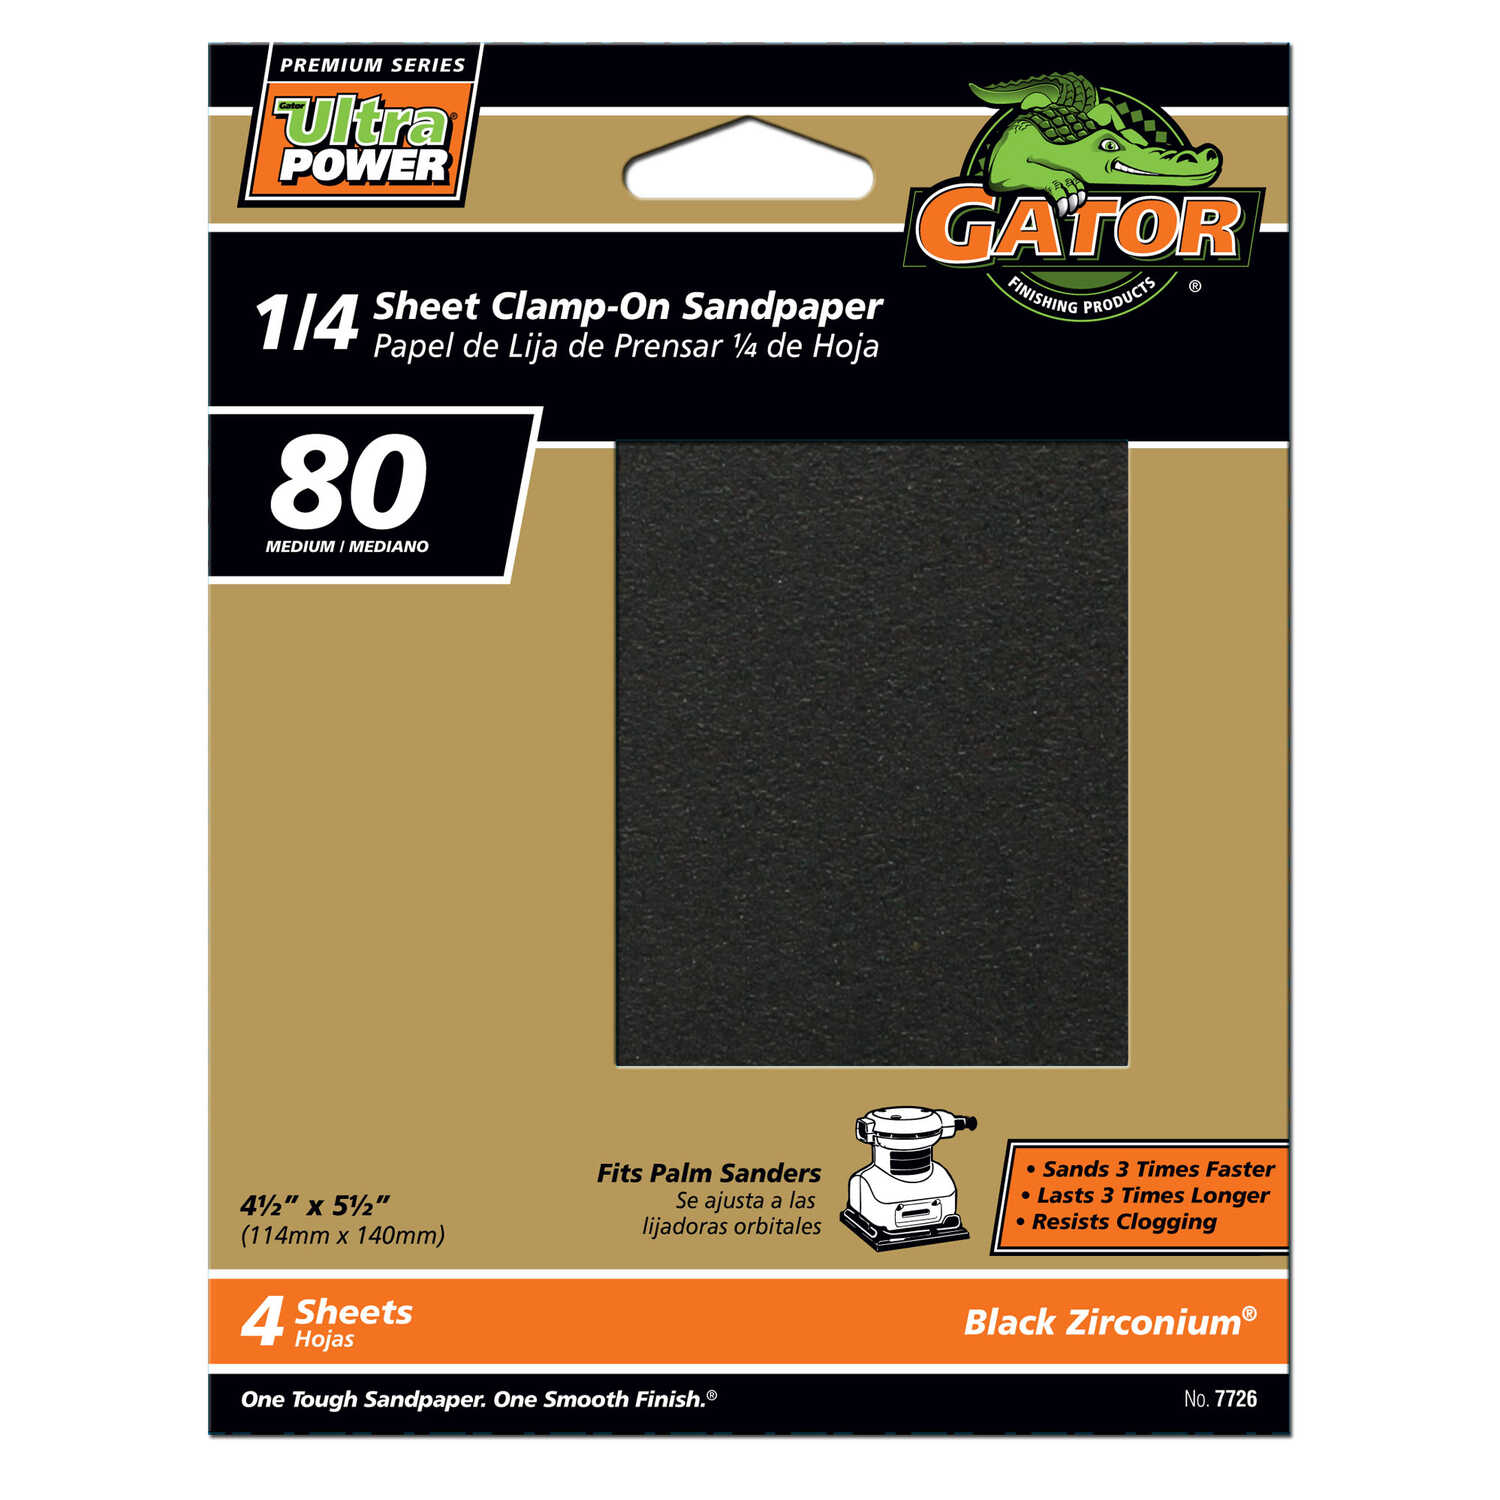 Gator  PowerPlus  5-1/2 in. L x 4-1/2 in. W 80 Grit Medium  Zirconium Oxide  1/4 Sheet Sandpaper  4